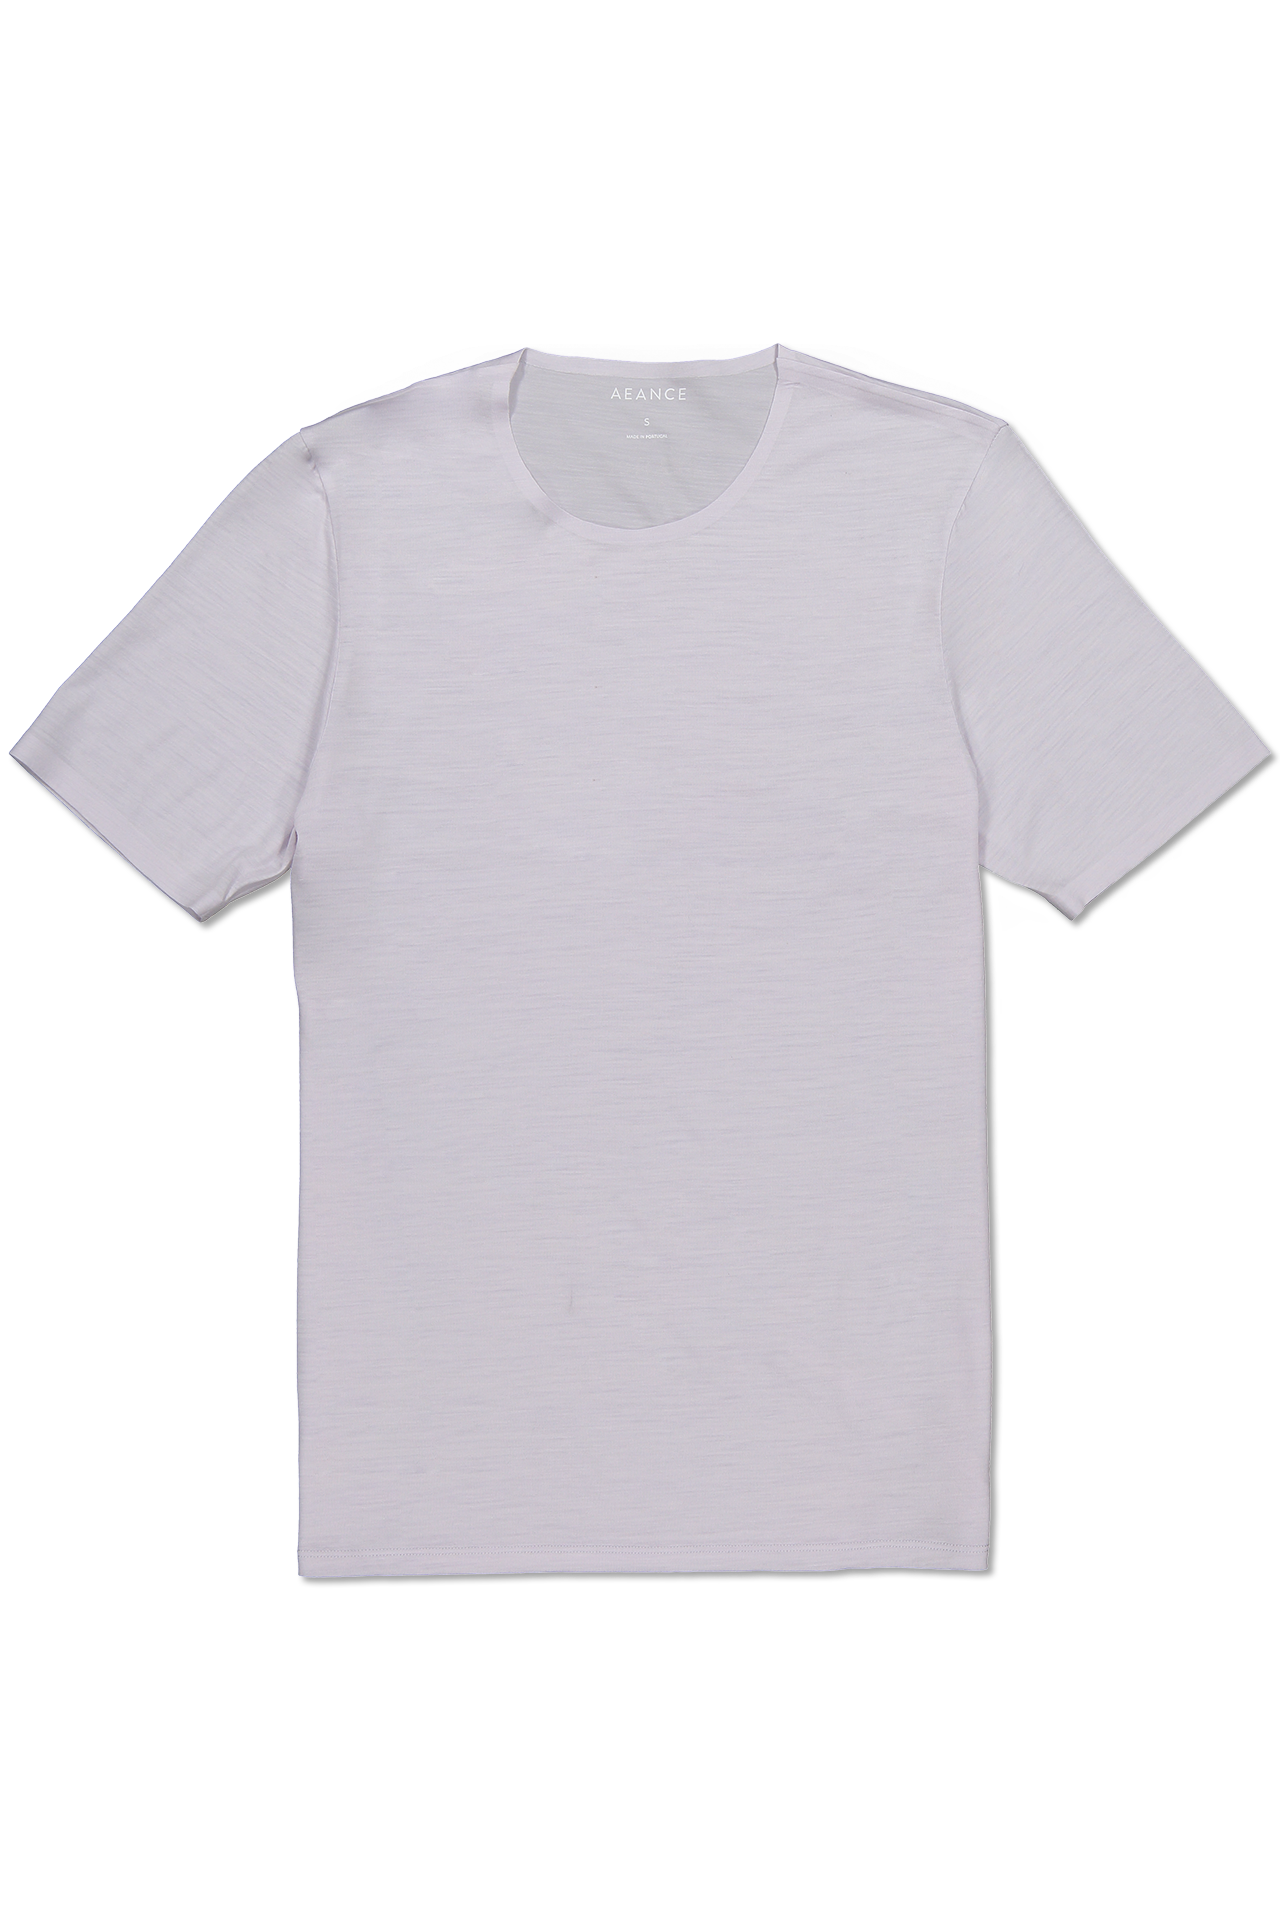 SS JERSEY T-SHIRT LIGHT GREY